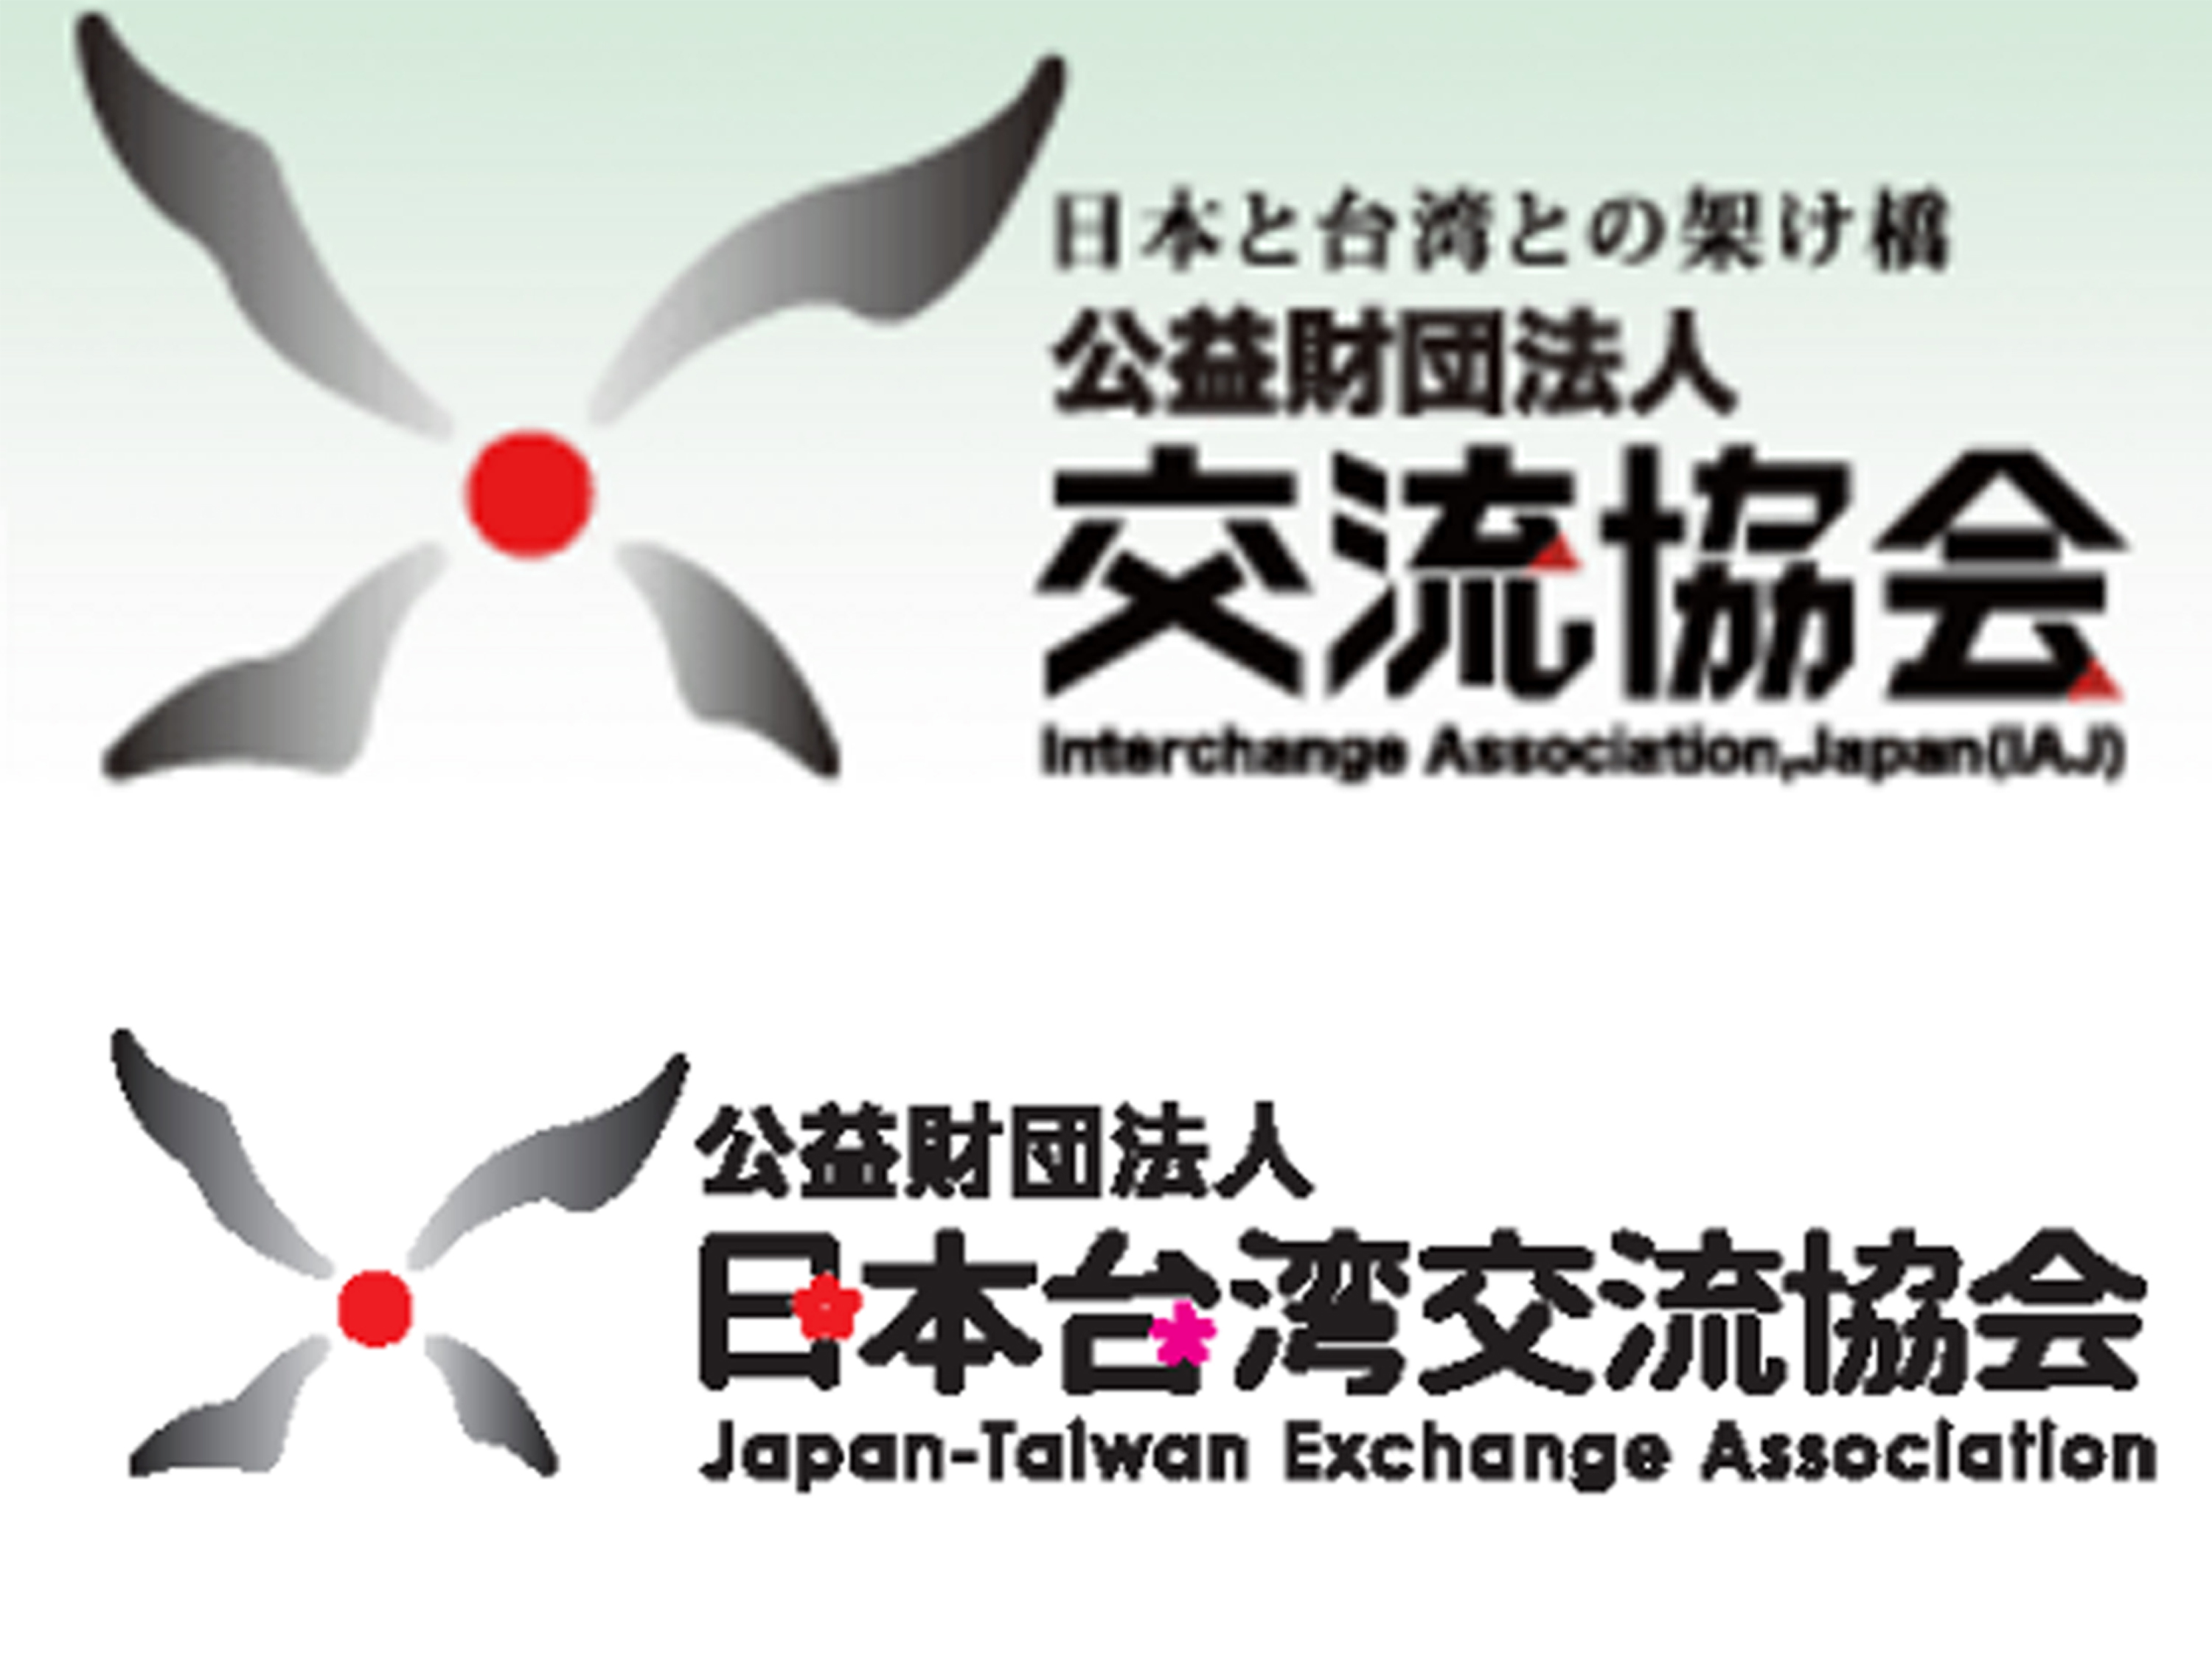 China 'dissatisfied' with name change of Japan's Taiwan representative office